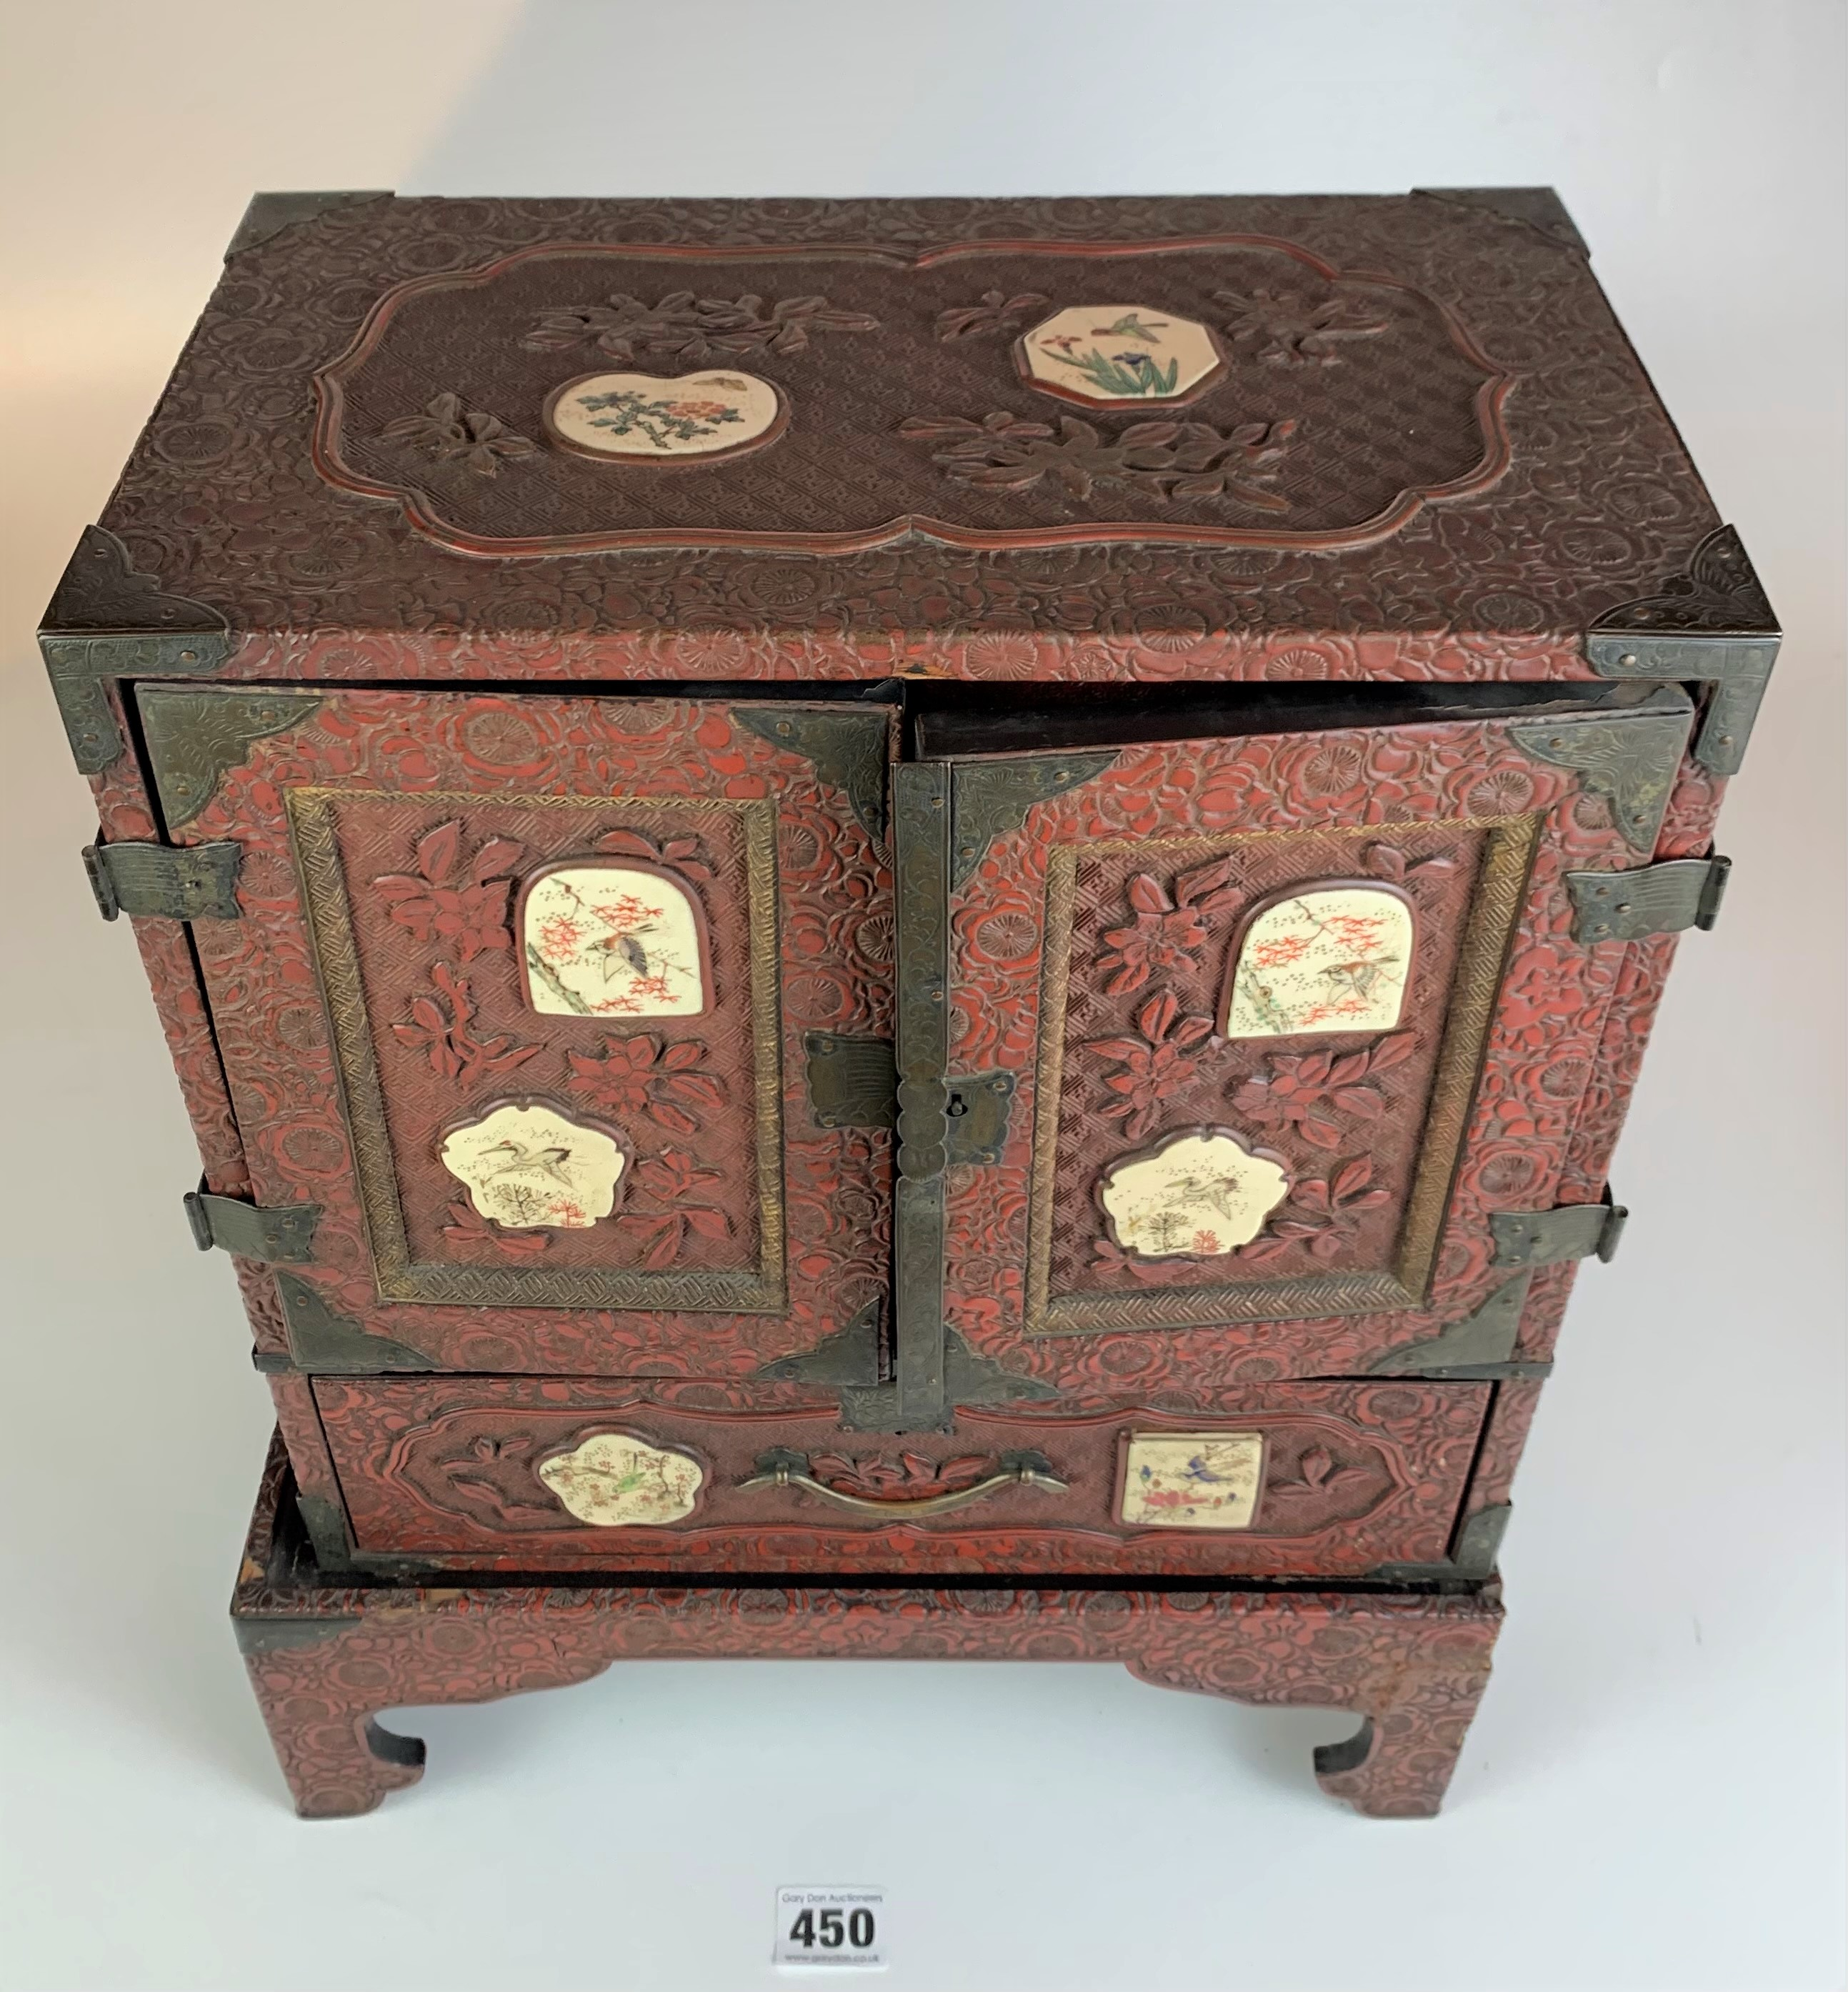 Small Japanese carved red cinnabar lacquer table cabinet with 8 Satsuma plaques on a matching stand. - Image 2 of 11